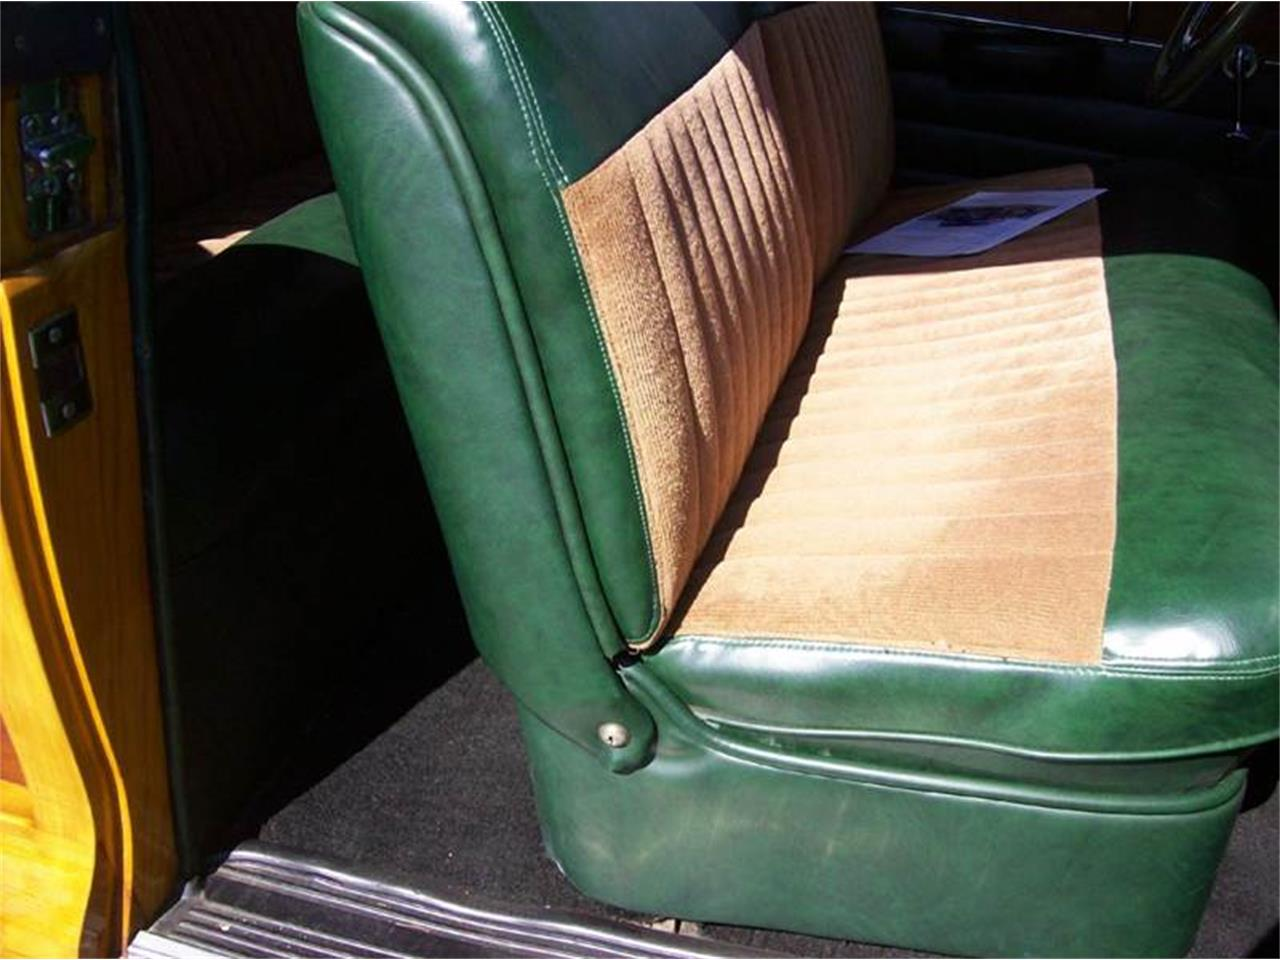 Large Picture of '49 Chrysler Town & Country Offered by Verhage Mitsubishi - J40N